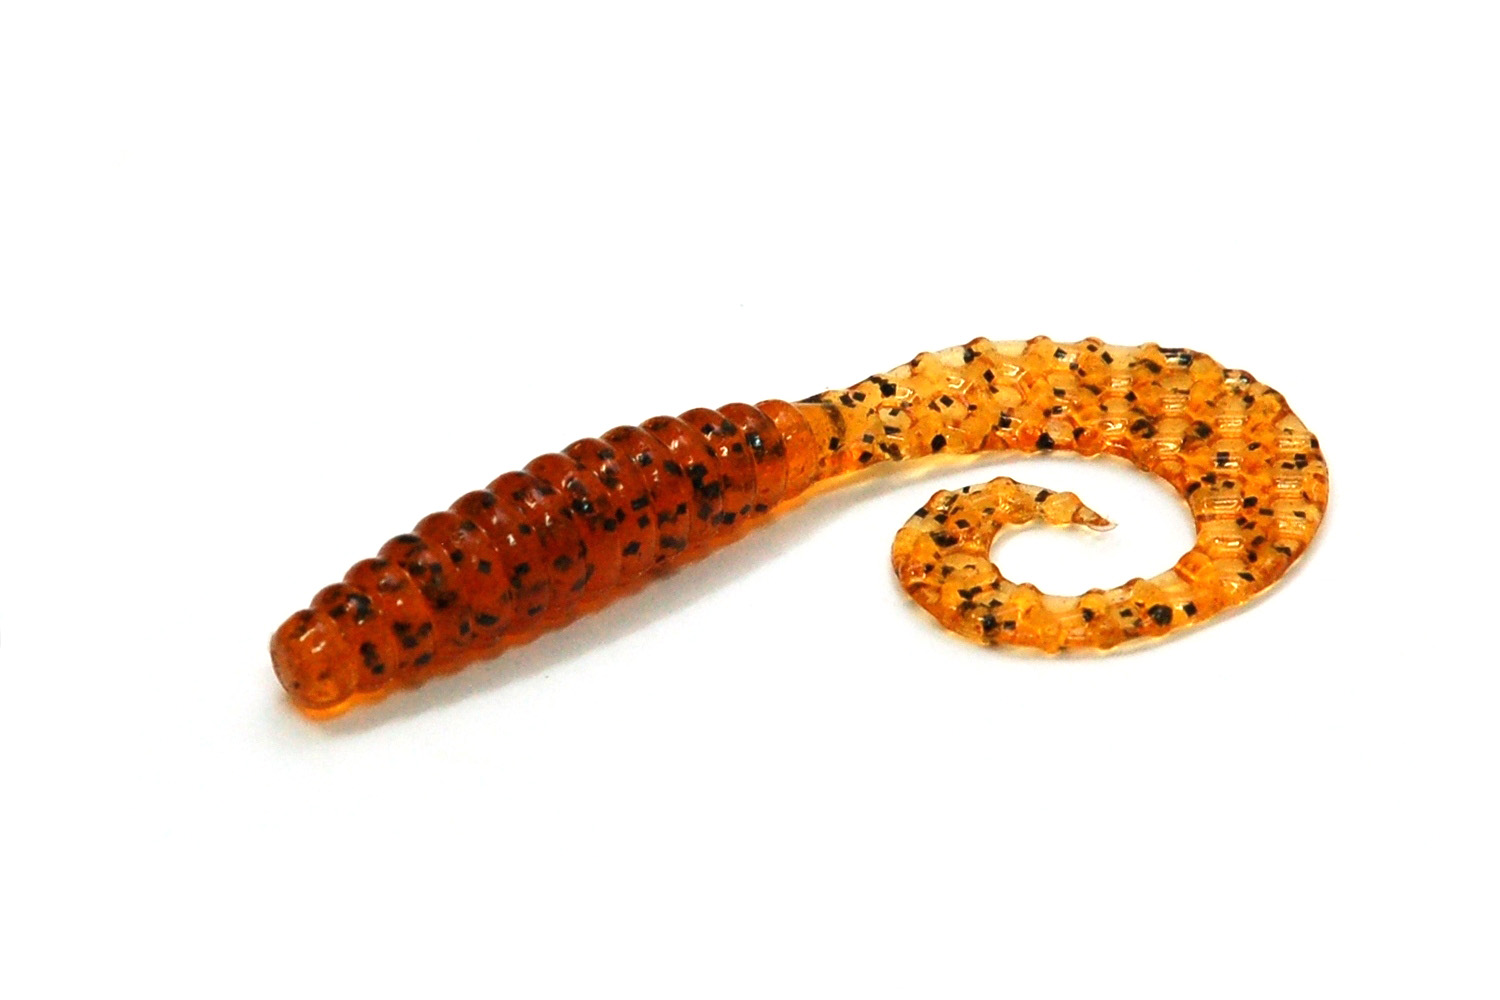 Bait Breath Curly Crub 3.5